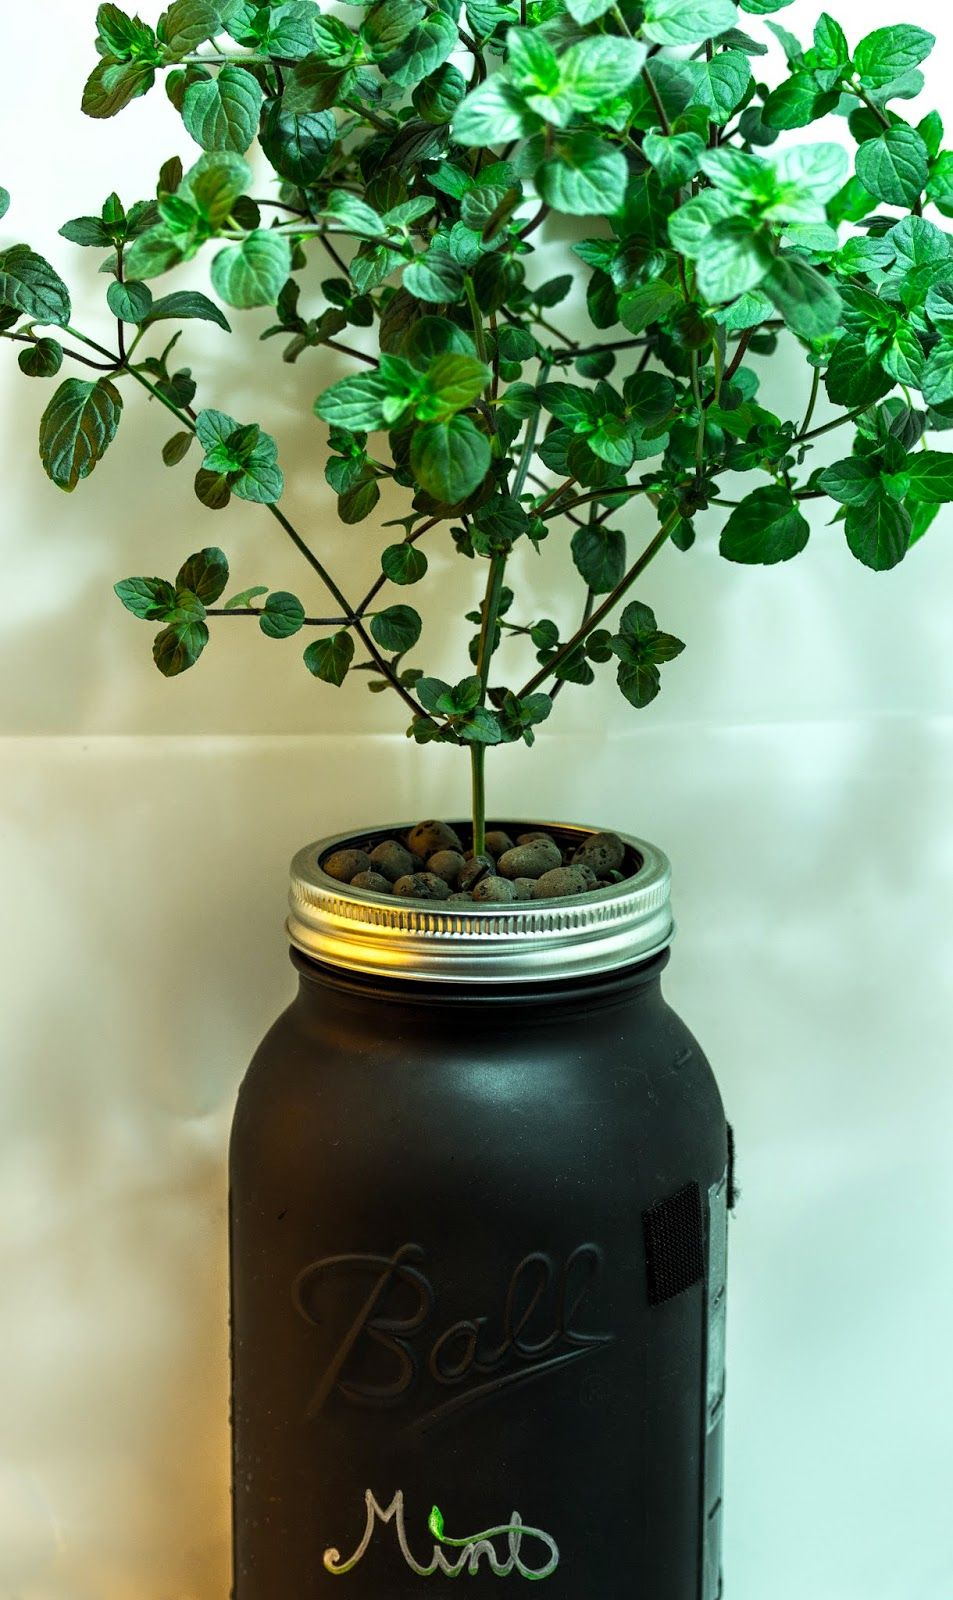 While looking around online for unique ways of growing herbs in the